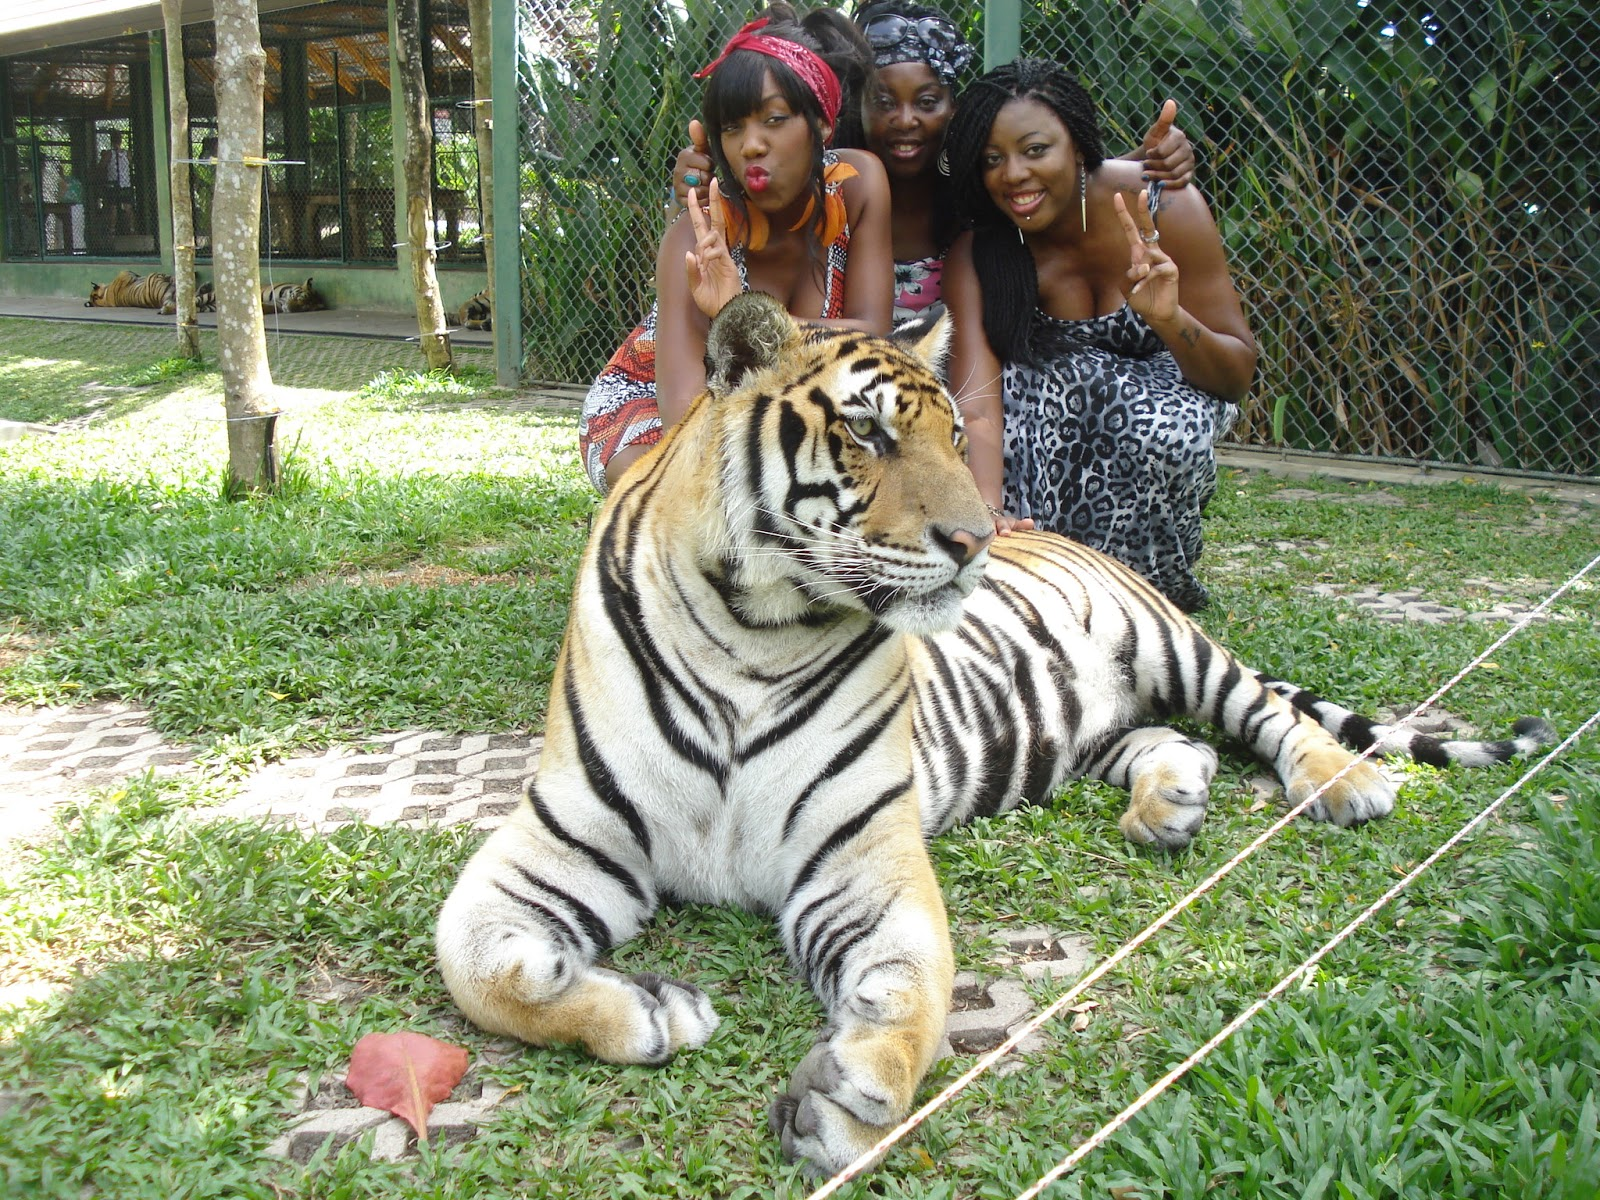 tiger kingdom, black people in thailand, posing with a tiger